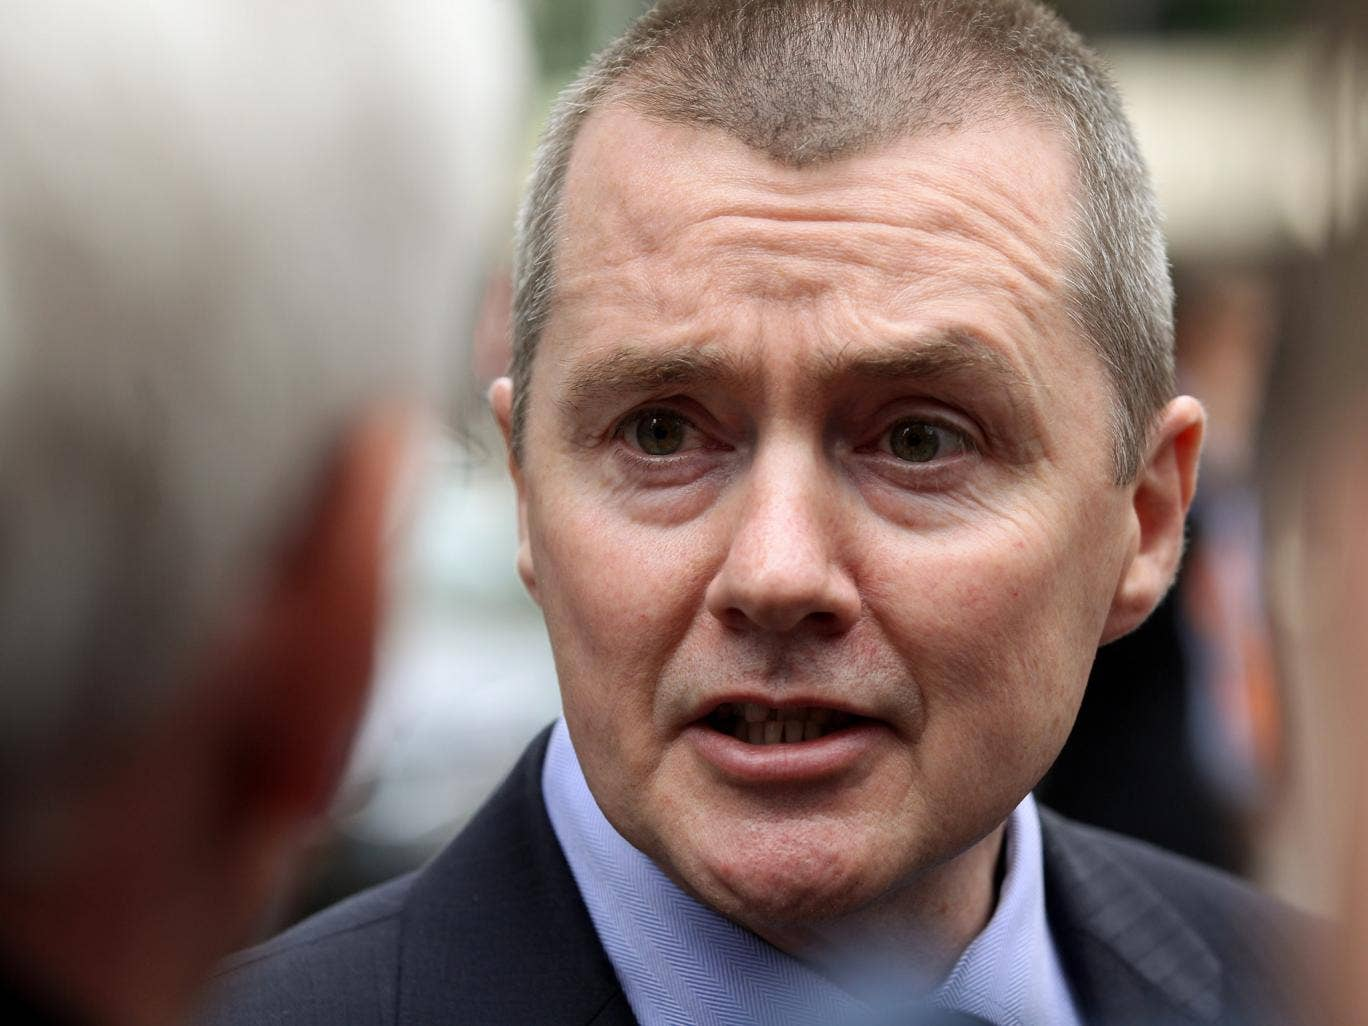 """Willie Walsh, Chief executive of British Airways, says: """"We must create the right environment to stimulate and support Britain's economic regeneration."""""""